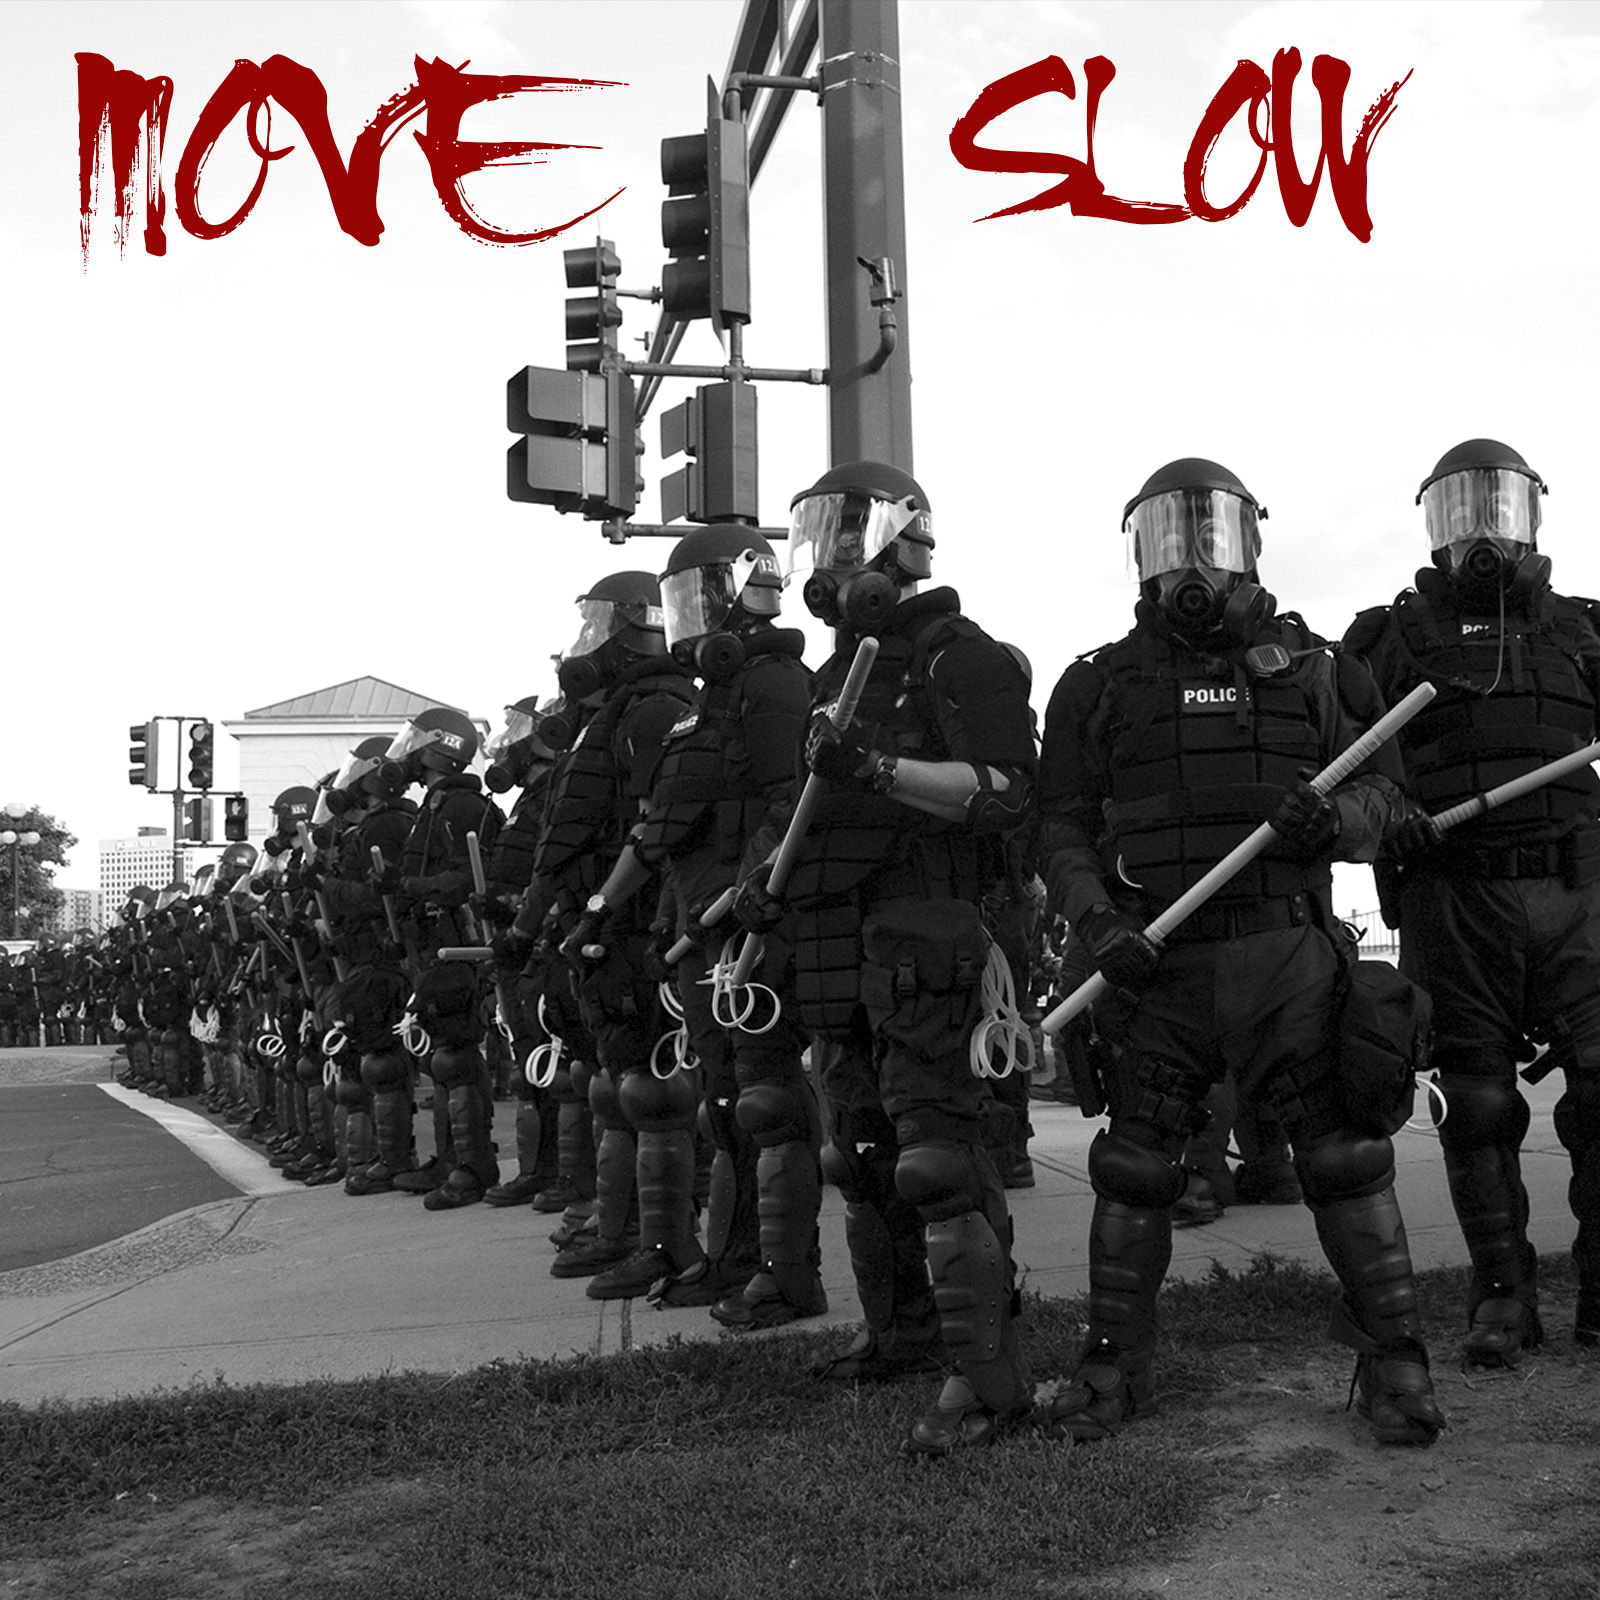 0_1472444207096_Move Slow Cover Art.jpg